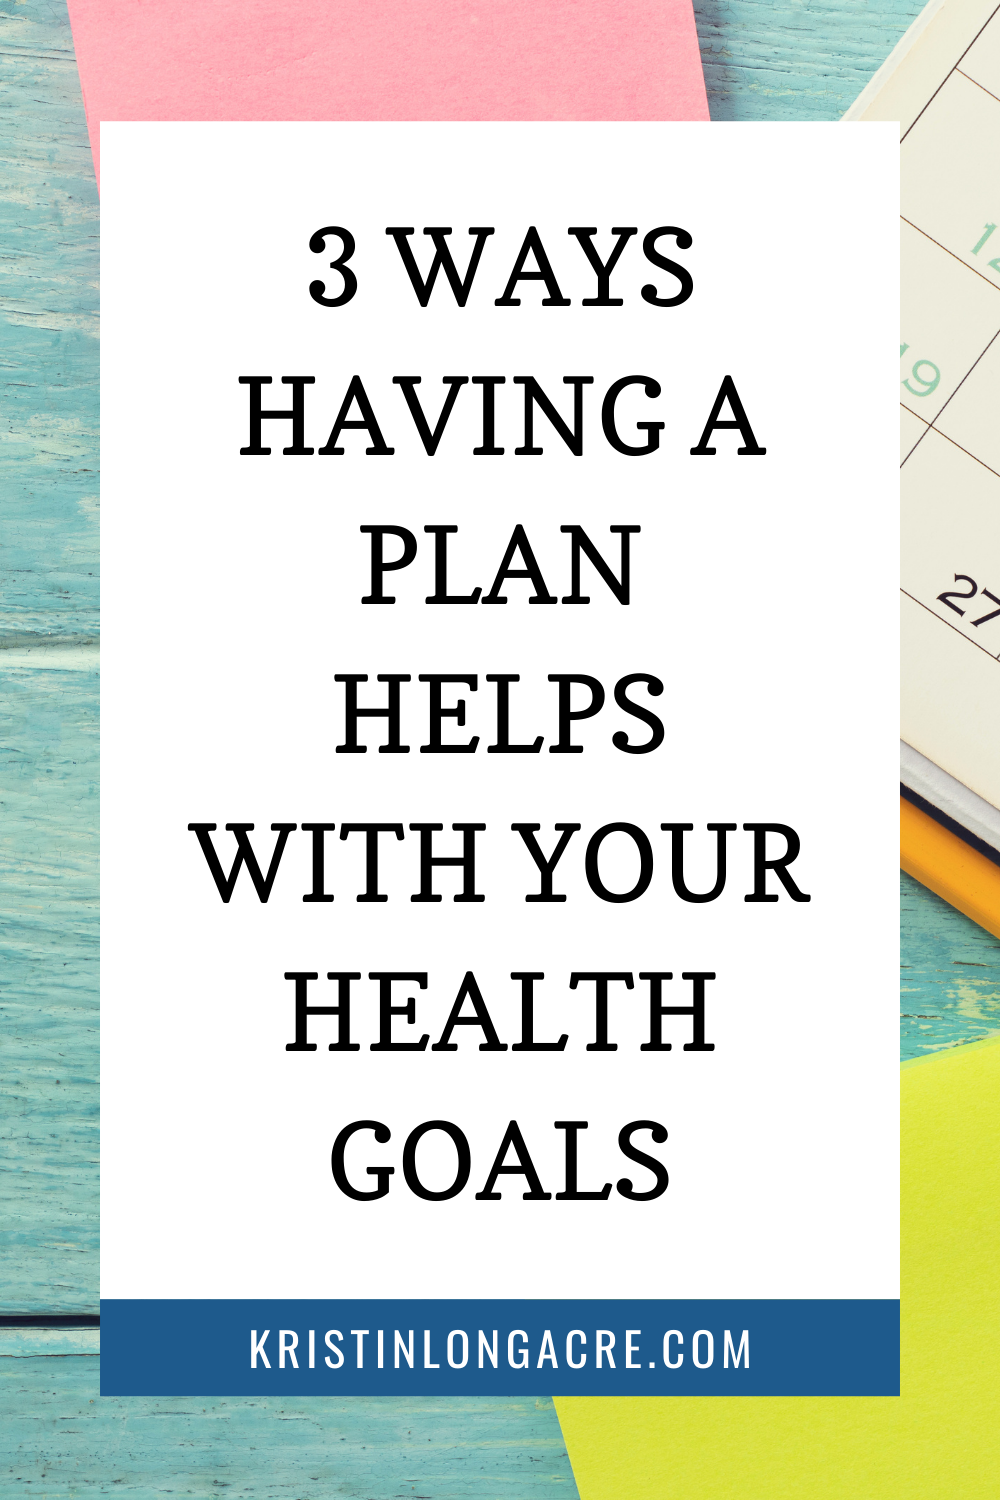 Weekly Plan For Your Health Goals